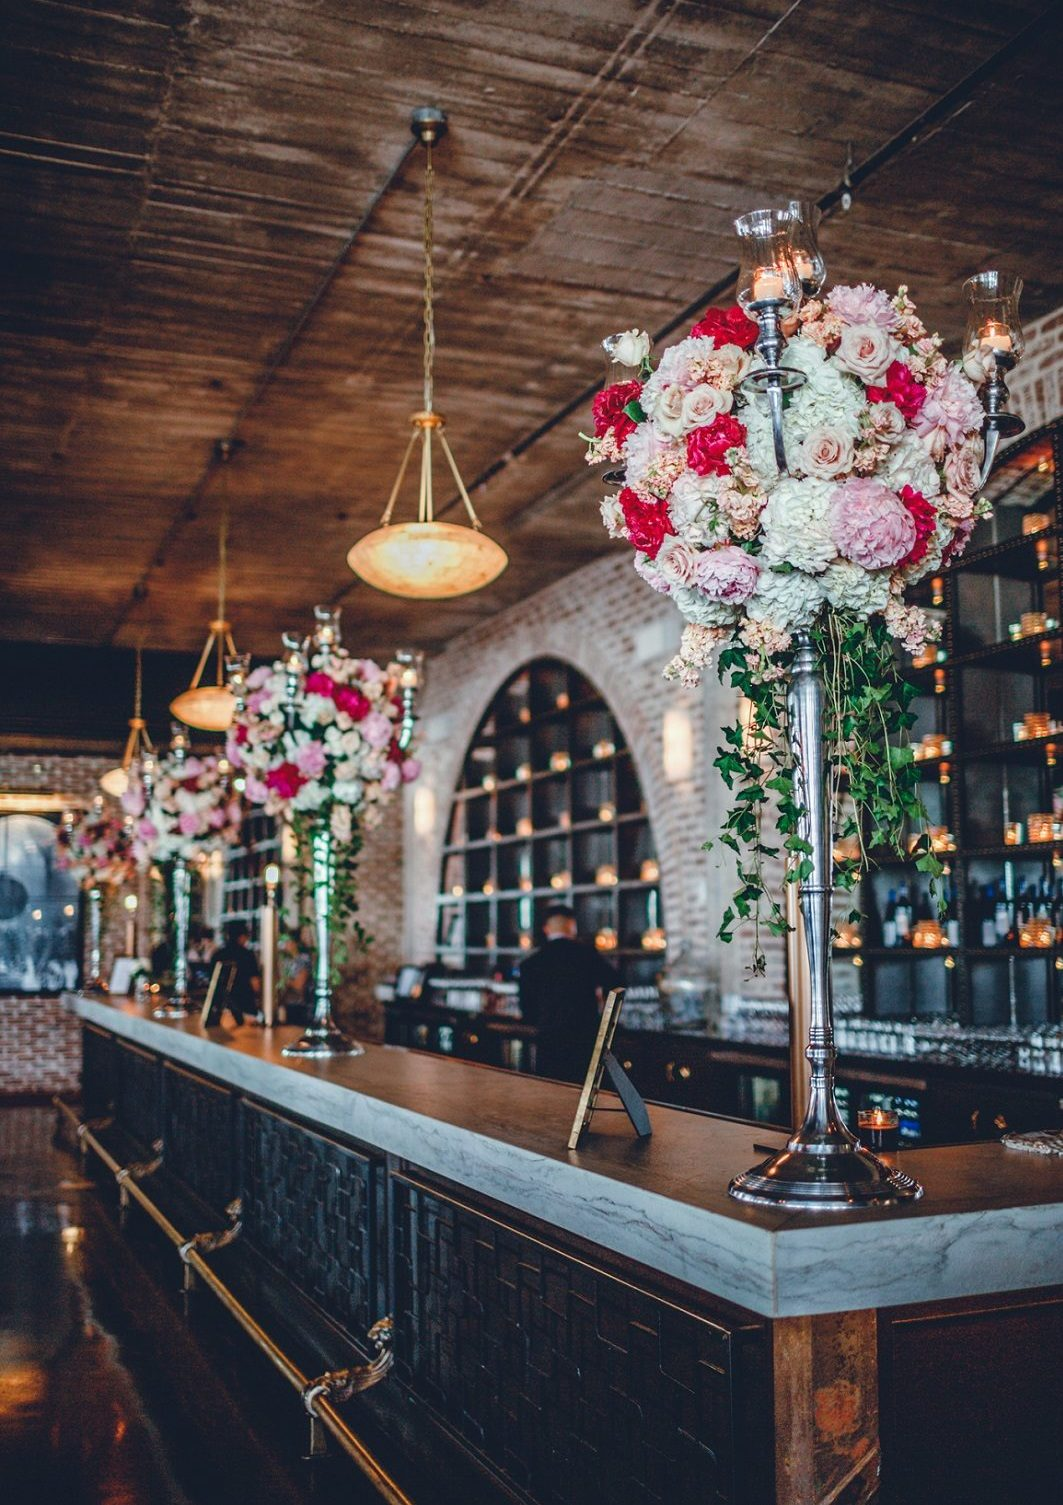 Wedding Venue - Industrial Bar